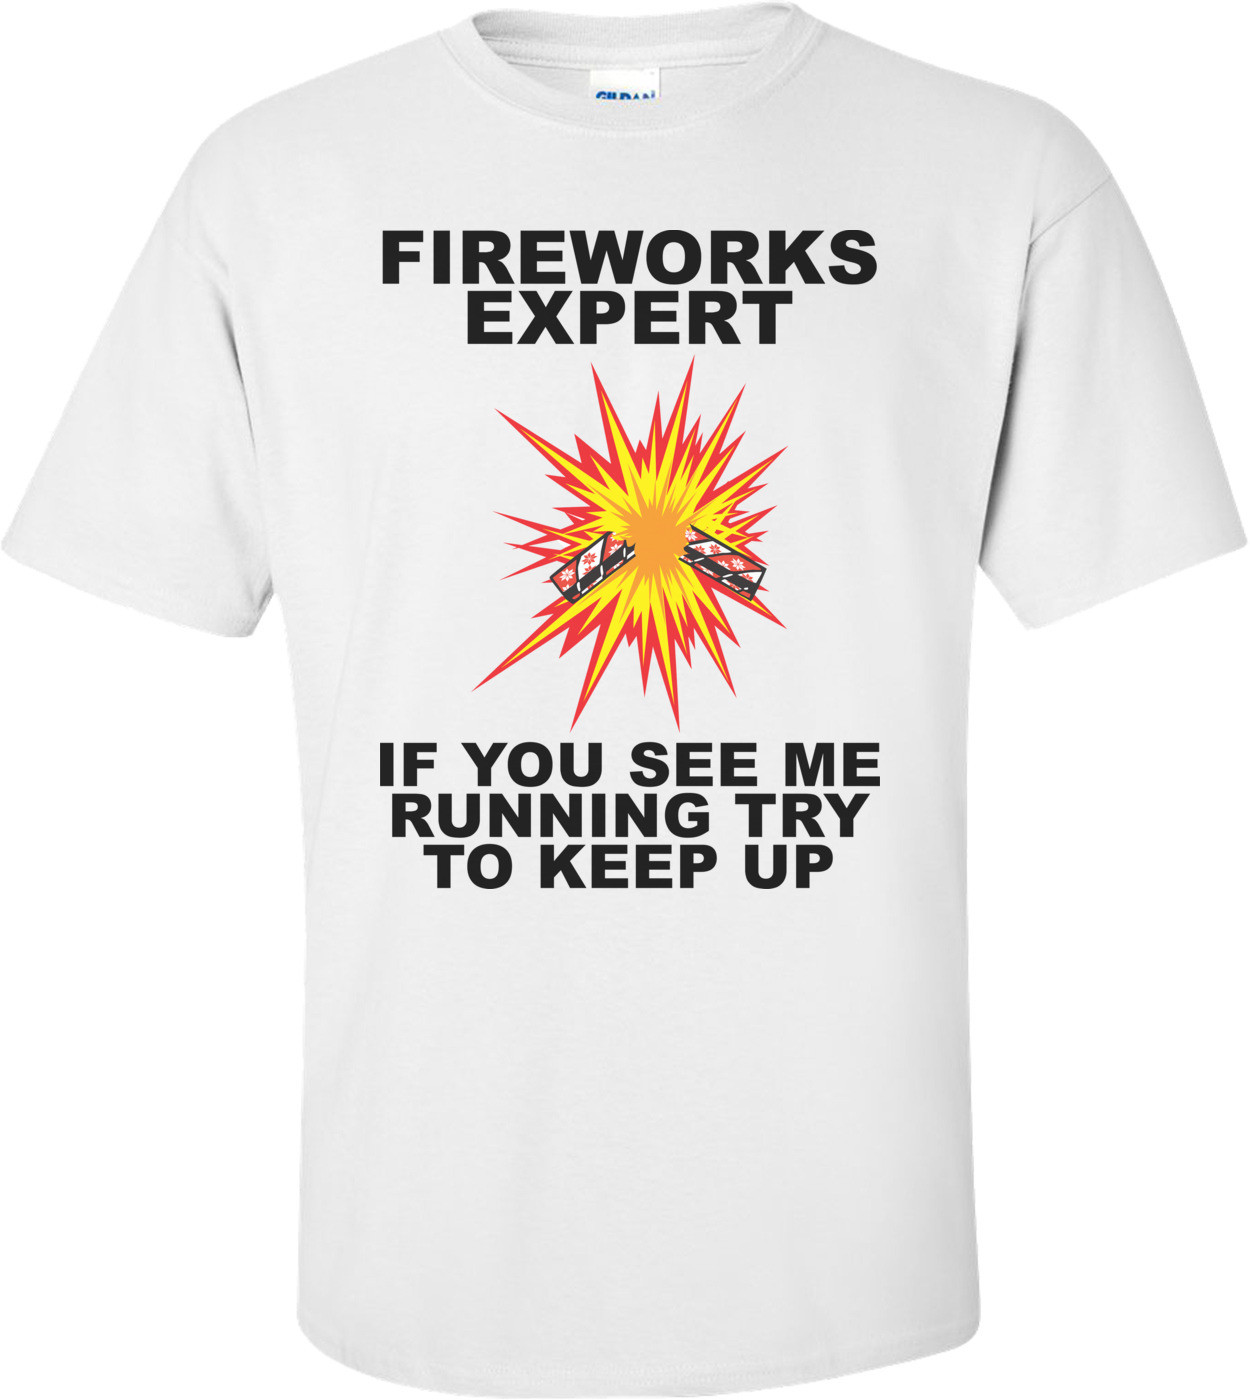 Fireworks Expert If You See Me Running Try To Keep Up - Fourth Of July T-shirt